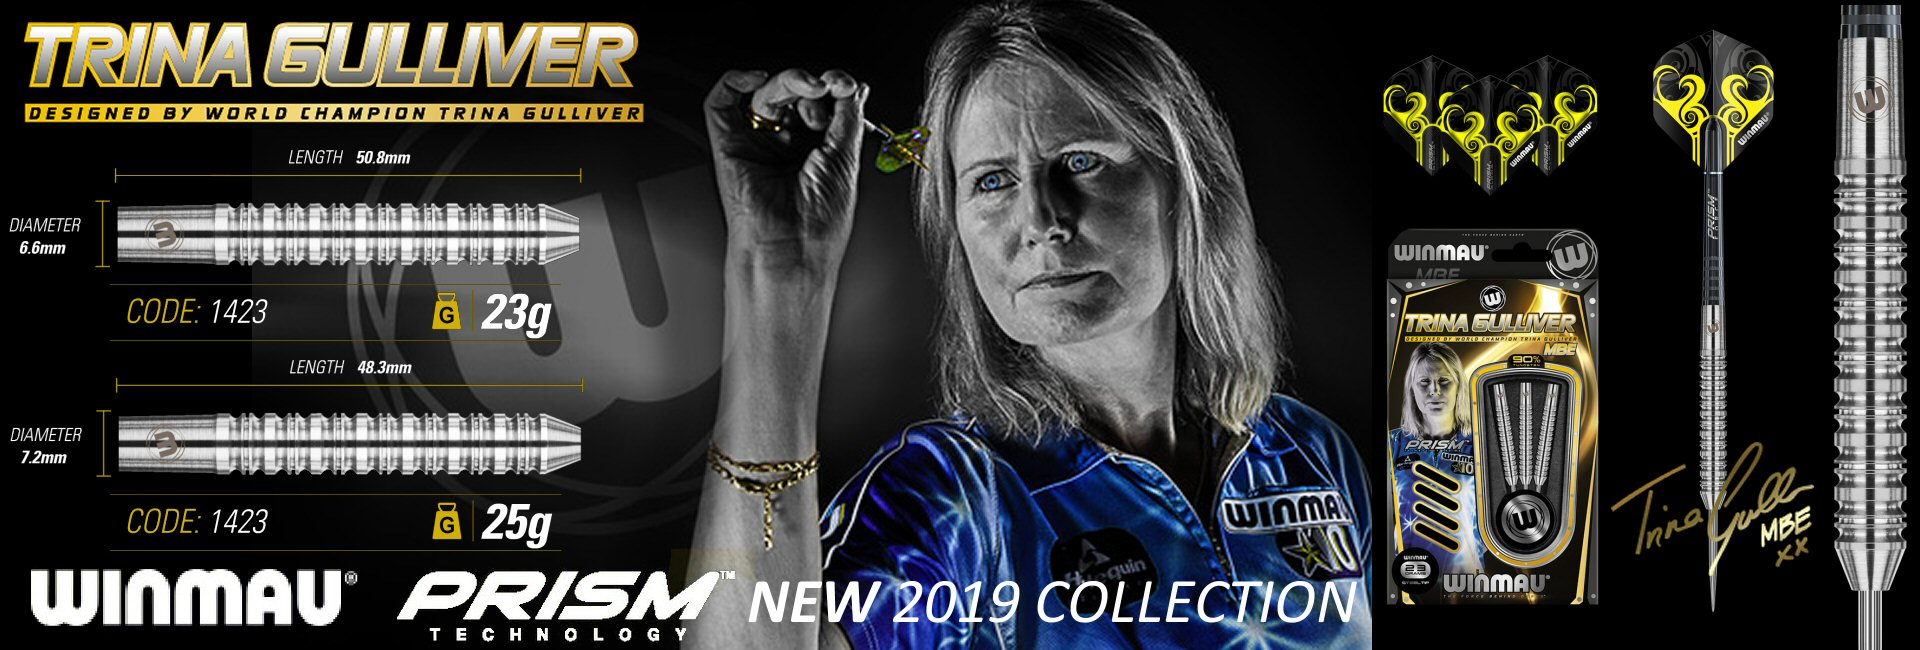 New Trina Gulliver MBE 2019 Tungsten Darts